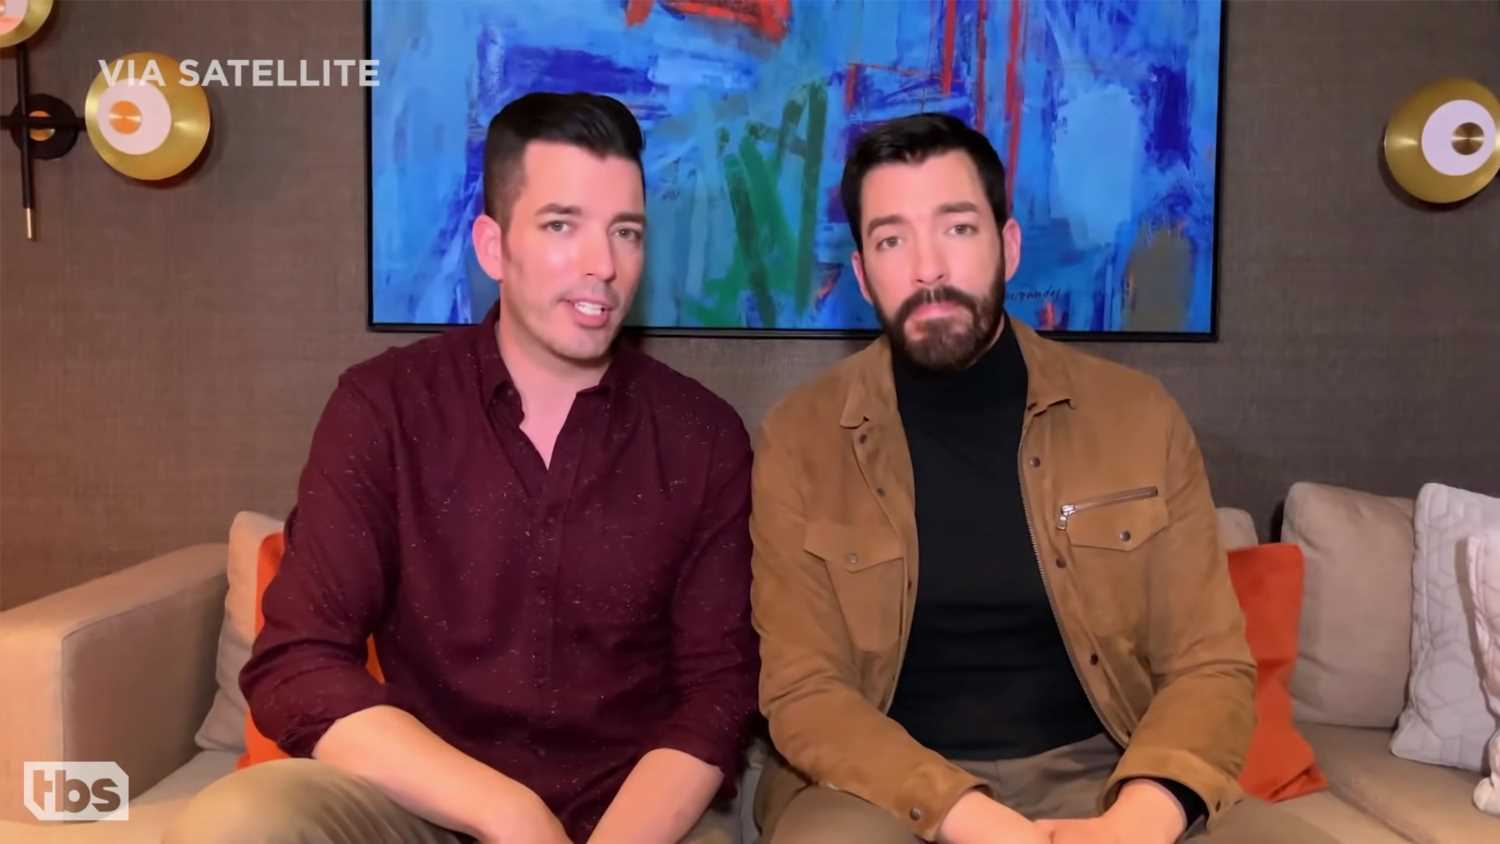 Conan O'Brien asks Property Brothers about buying Greenland